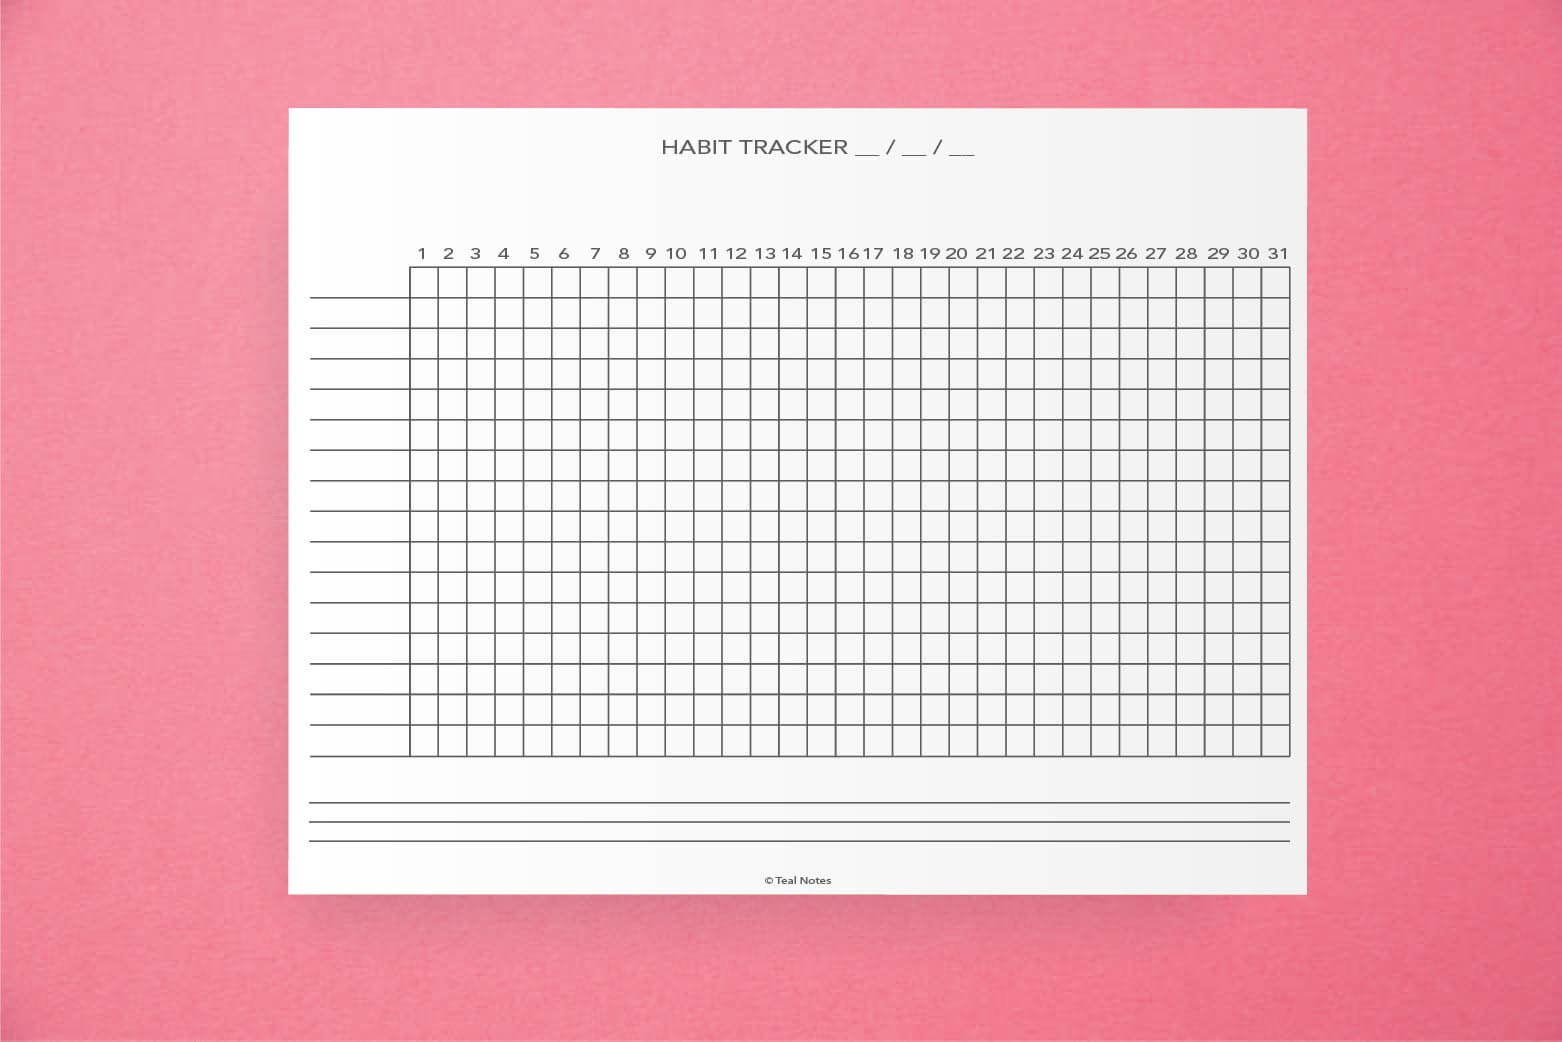 picture regarding Daily Habit Tracker Printable identified as Absolutely free Printable Behavior Tracker PDF: The Greatest Behavior Tracker